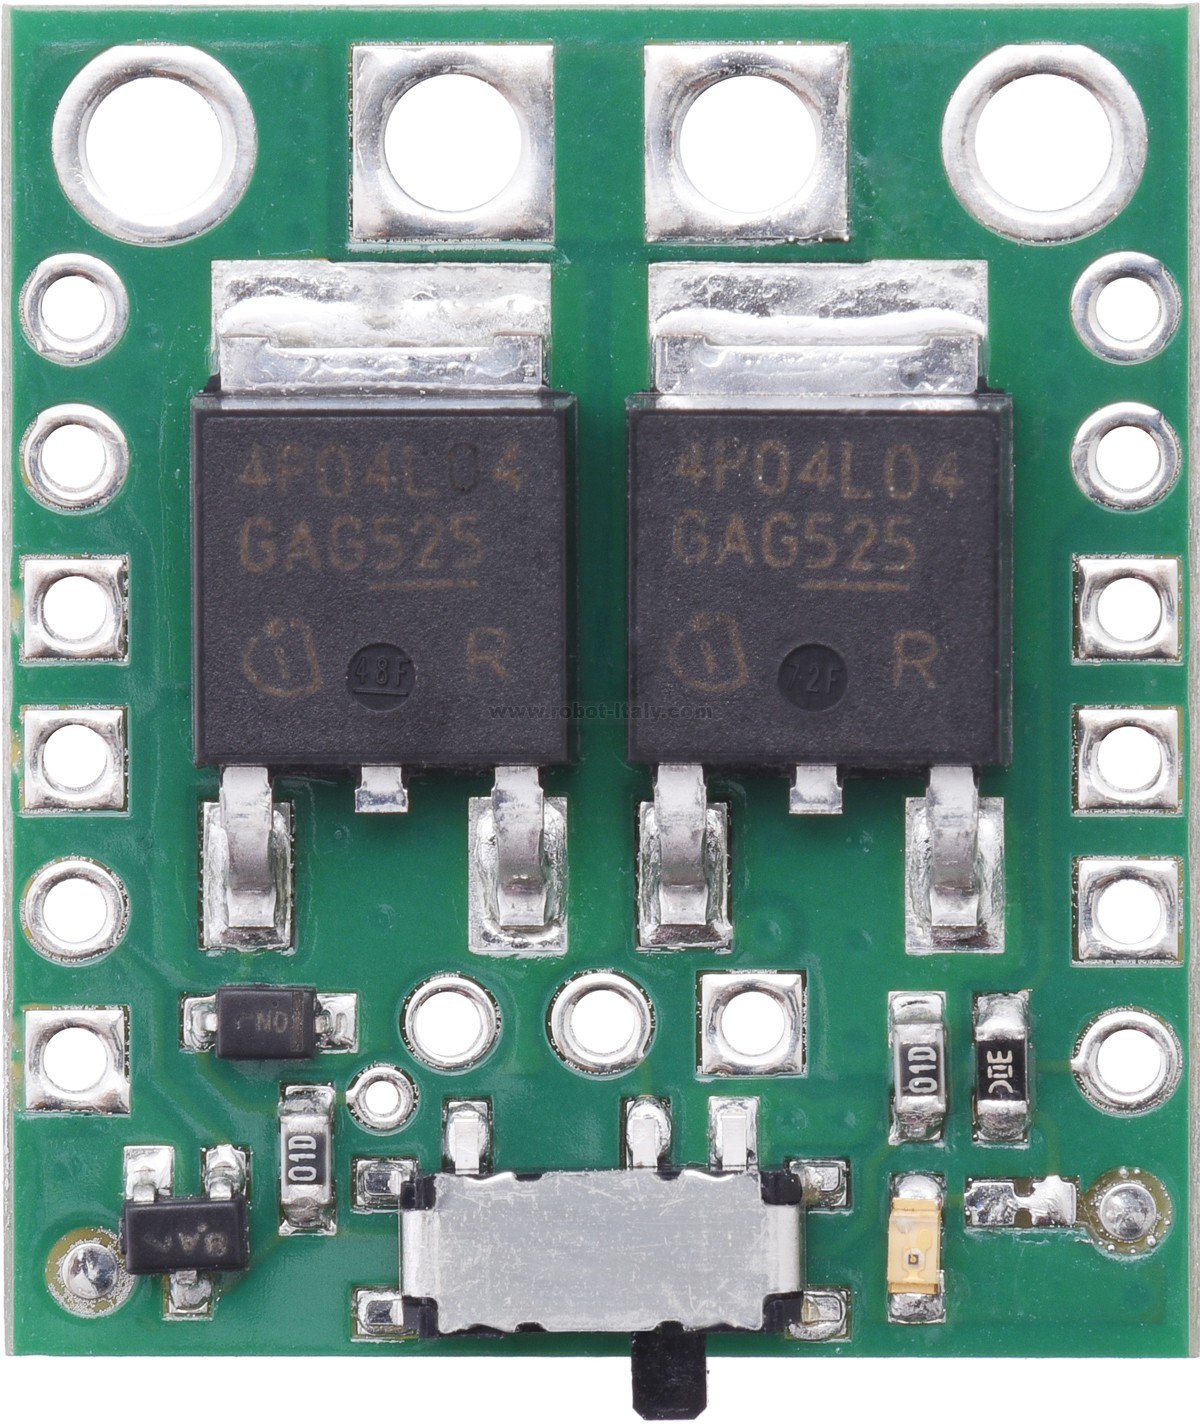 2815 Big Mosfet Slide Switch With Reverse Voltage